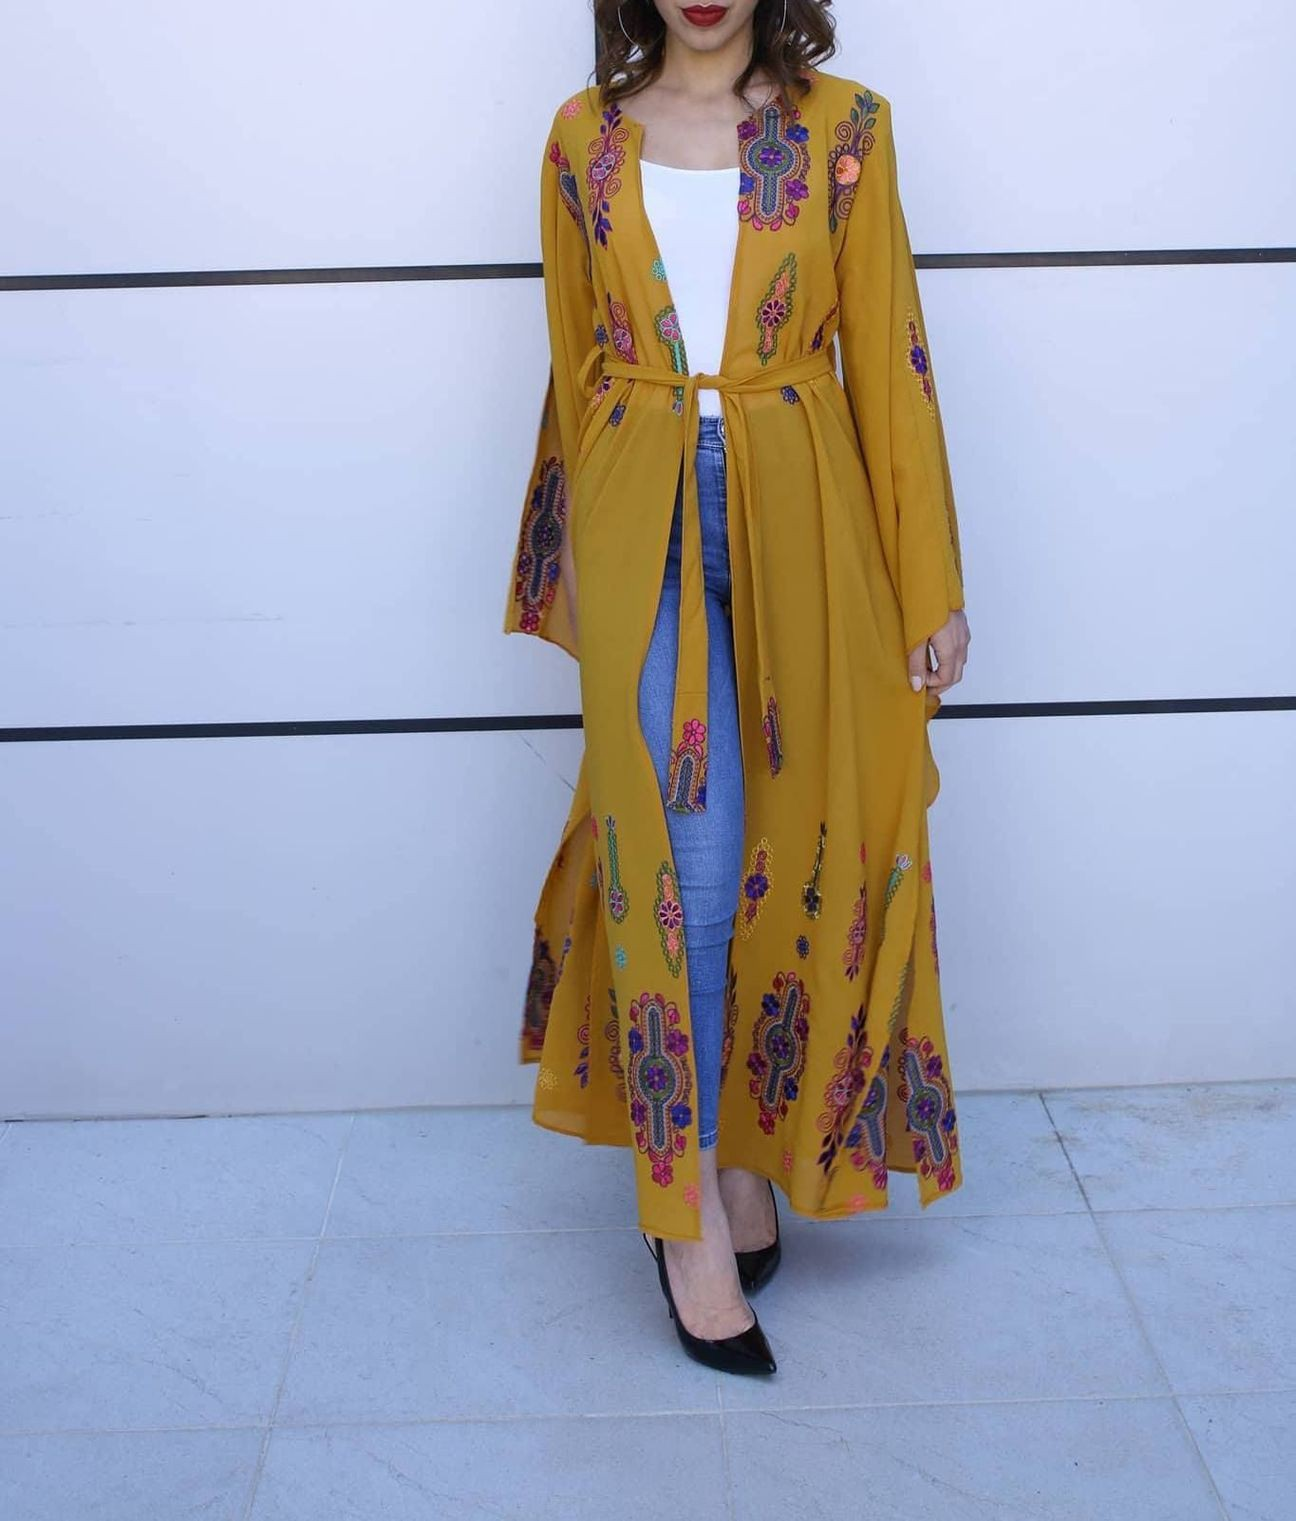 Orange and yellow dresses ideas with formal wear, embroidery